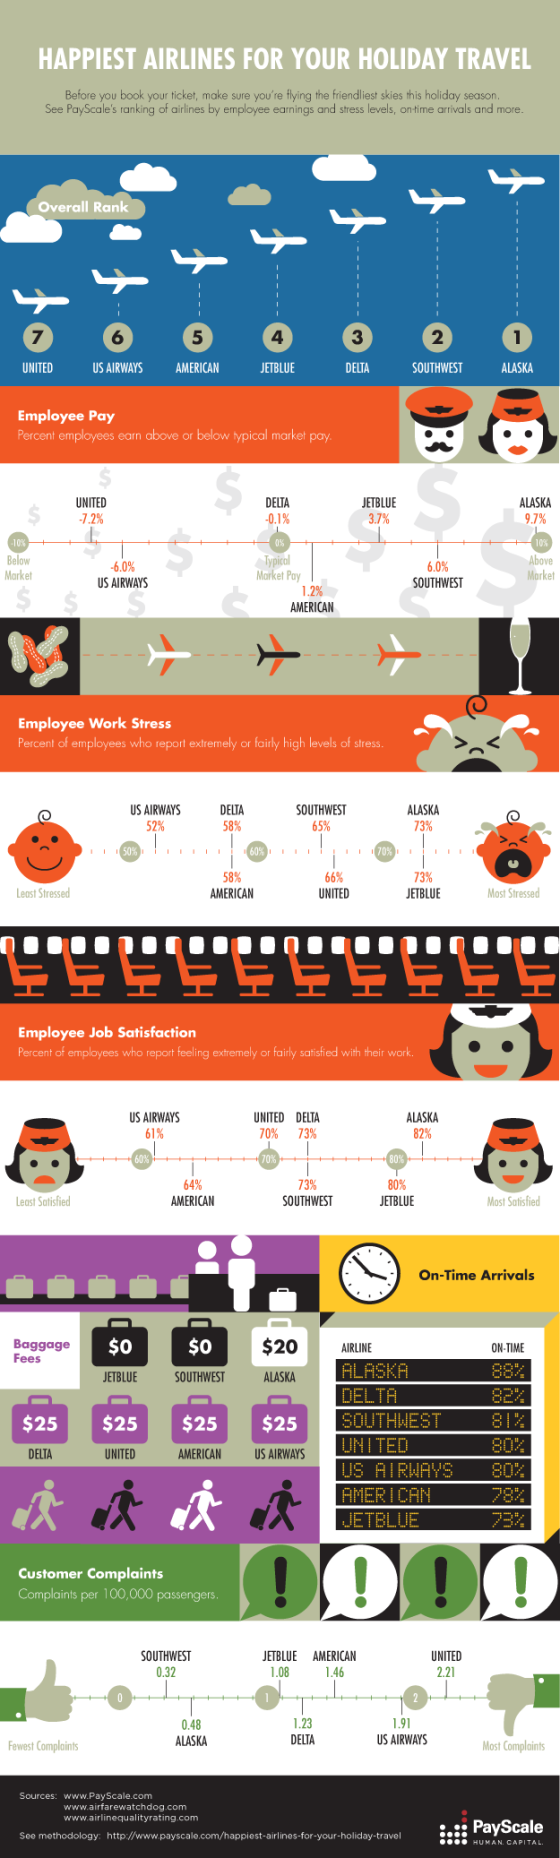 Happiest Airlines for Your Holiday Travel [infographic]